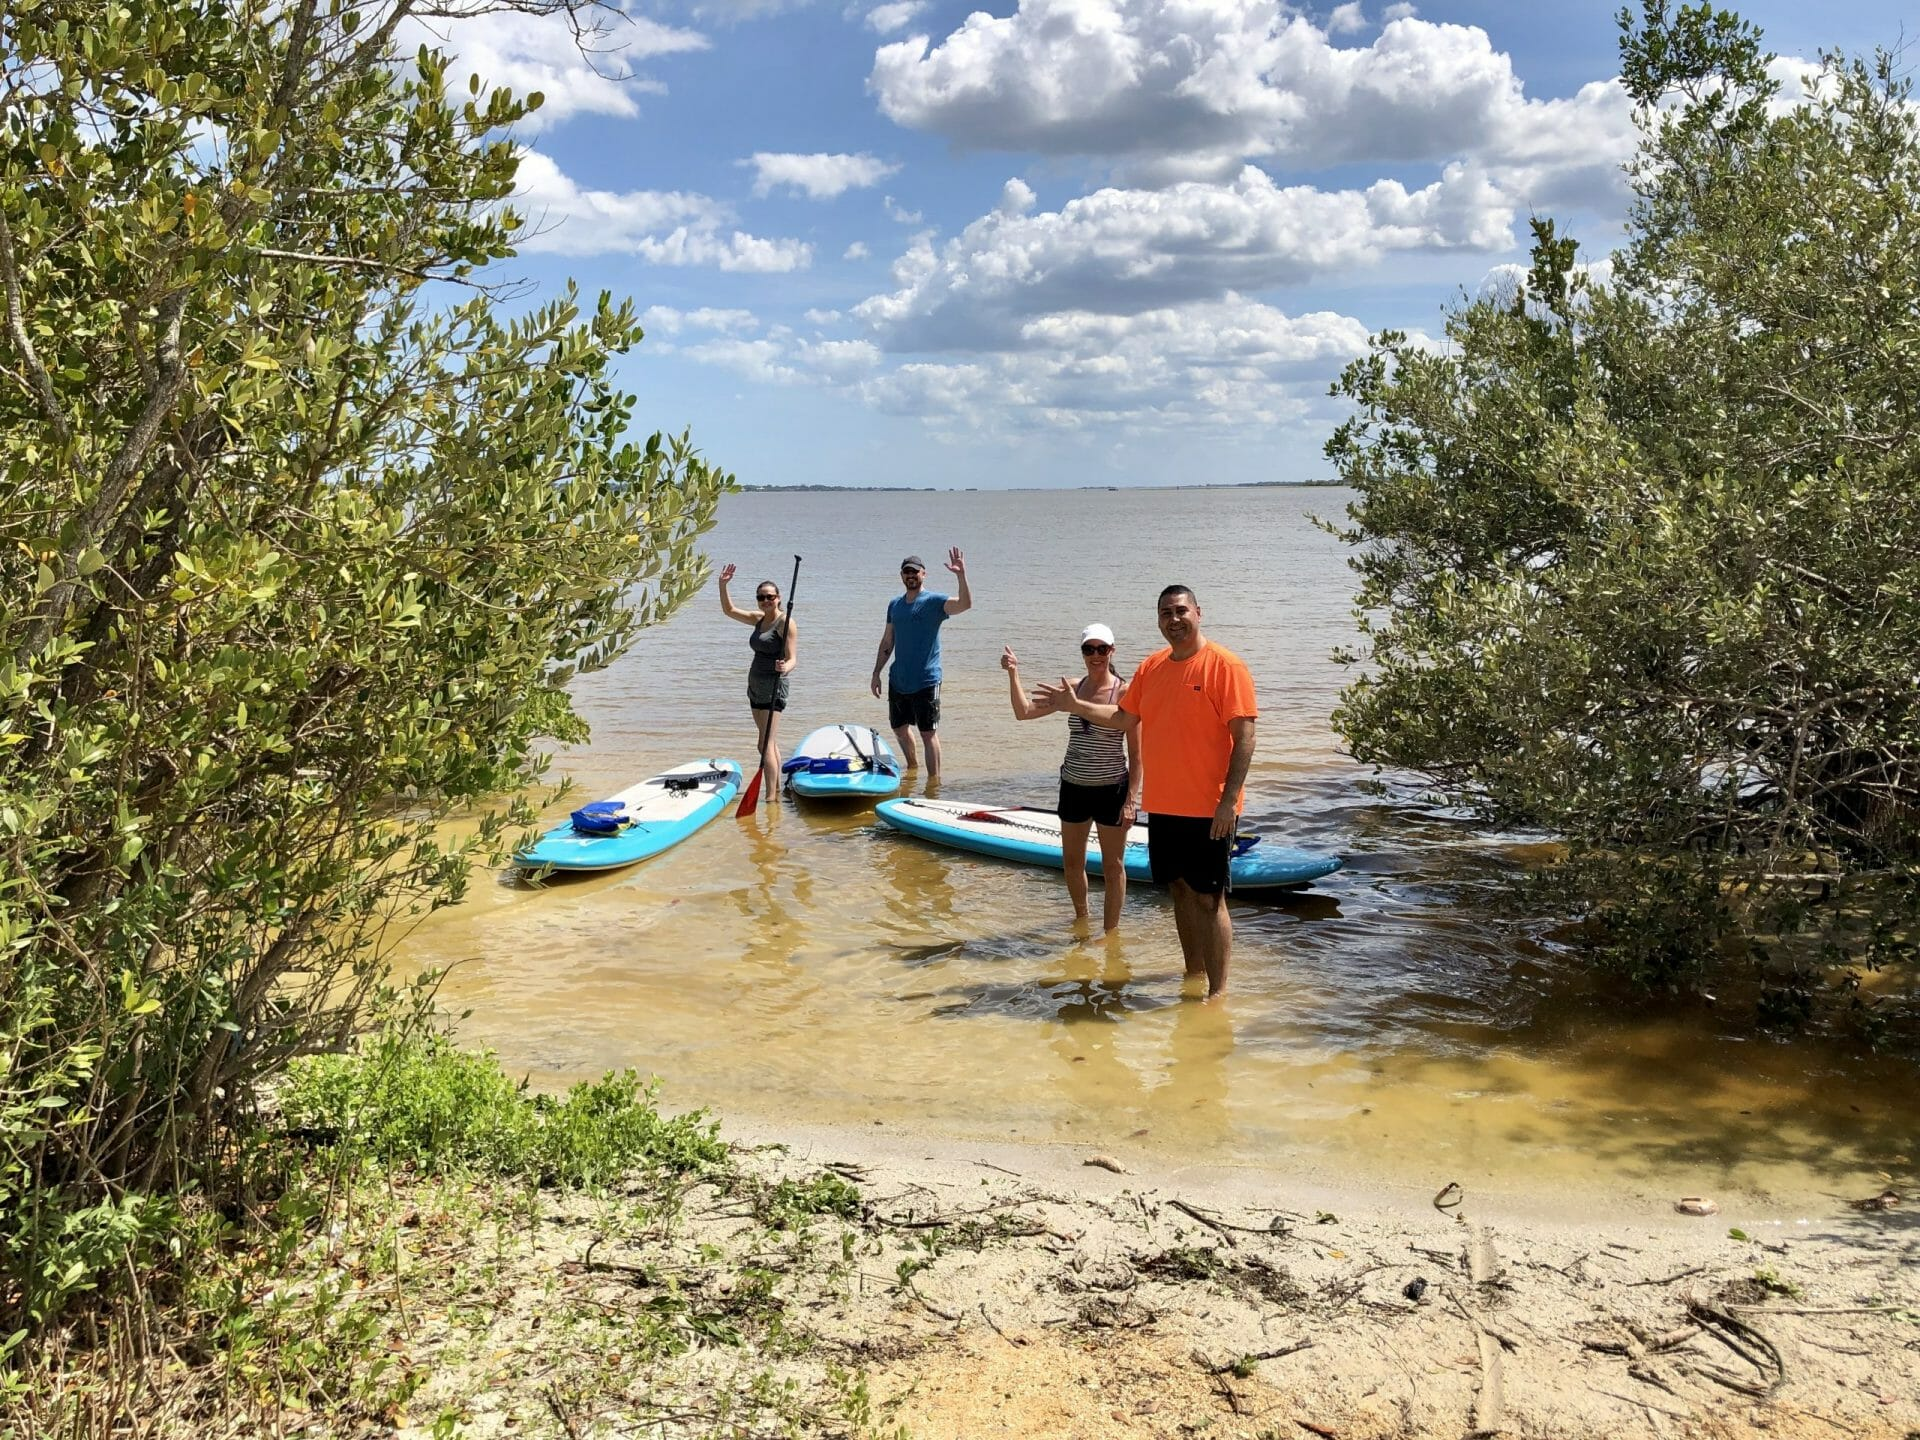 SOBE SURF WATER FRONT LAUNCH KAYAK RENTALS PADDLE BOARD RENTALS